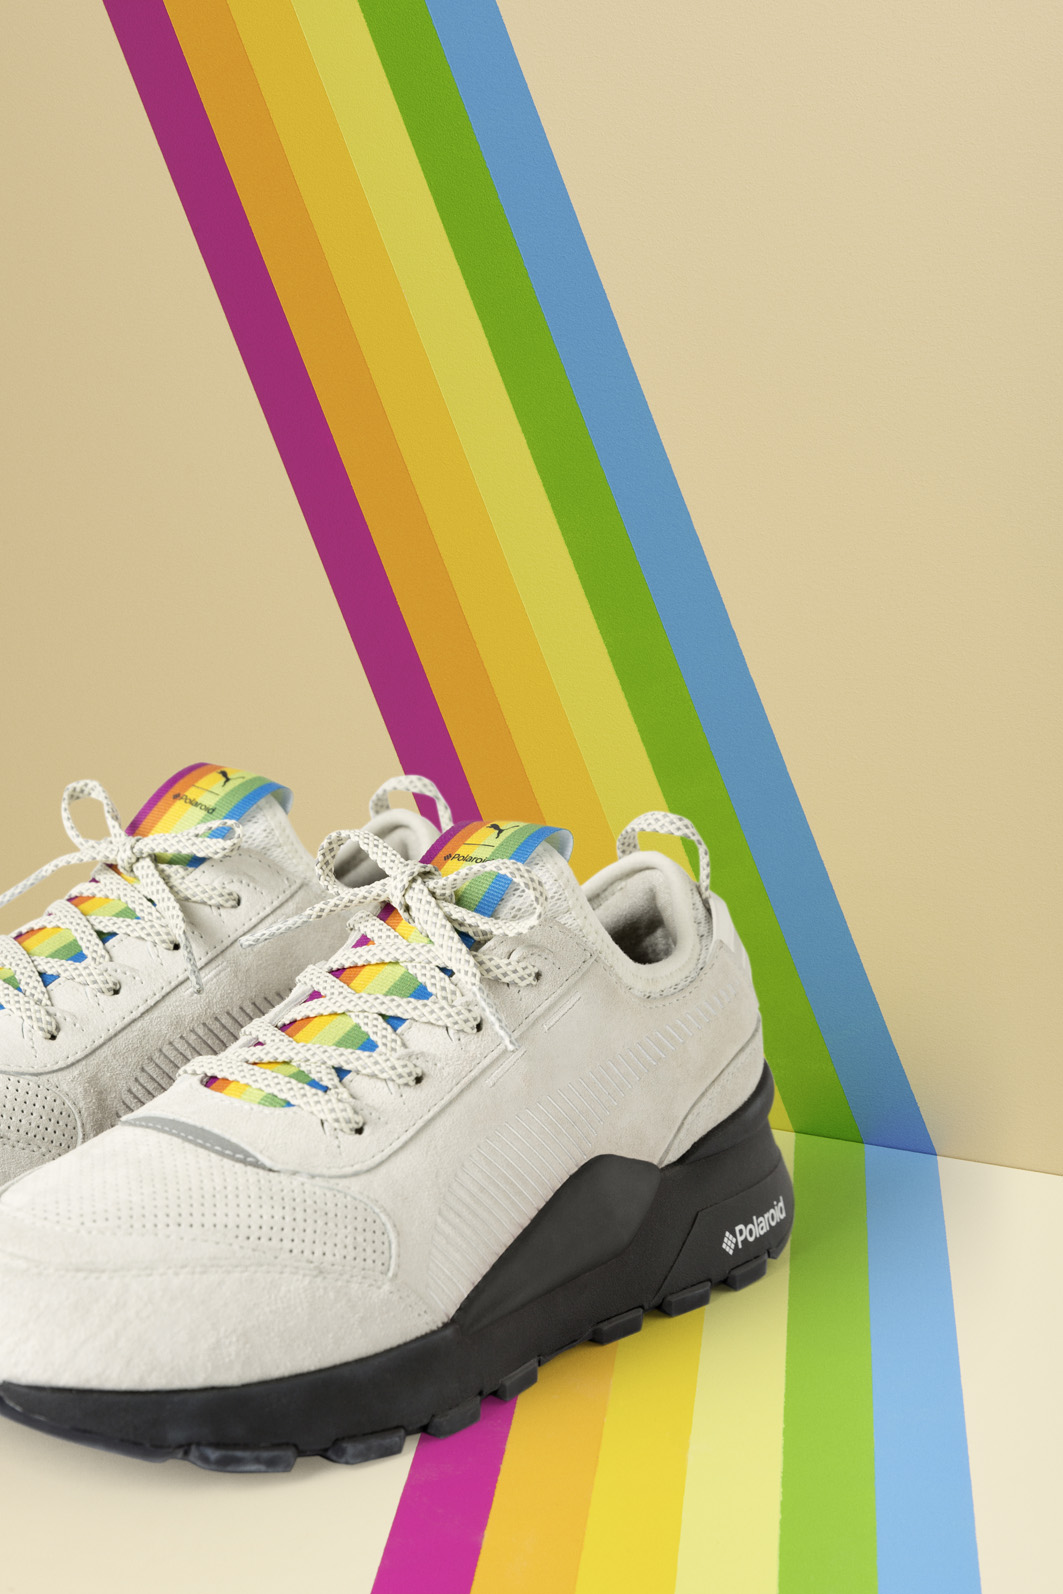 98f7ae0a0b4 The RS-100 Polaroid sneaker reimagines the 80 s RS-100 model with hints of  photography elements. Between the two sneaker styles